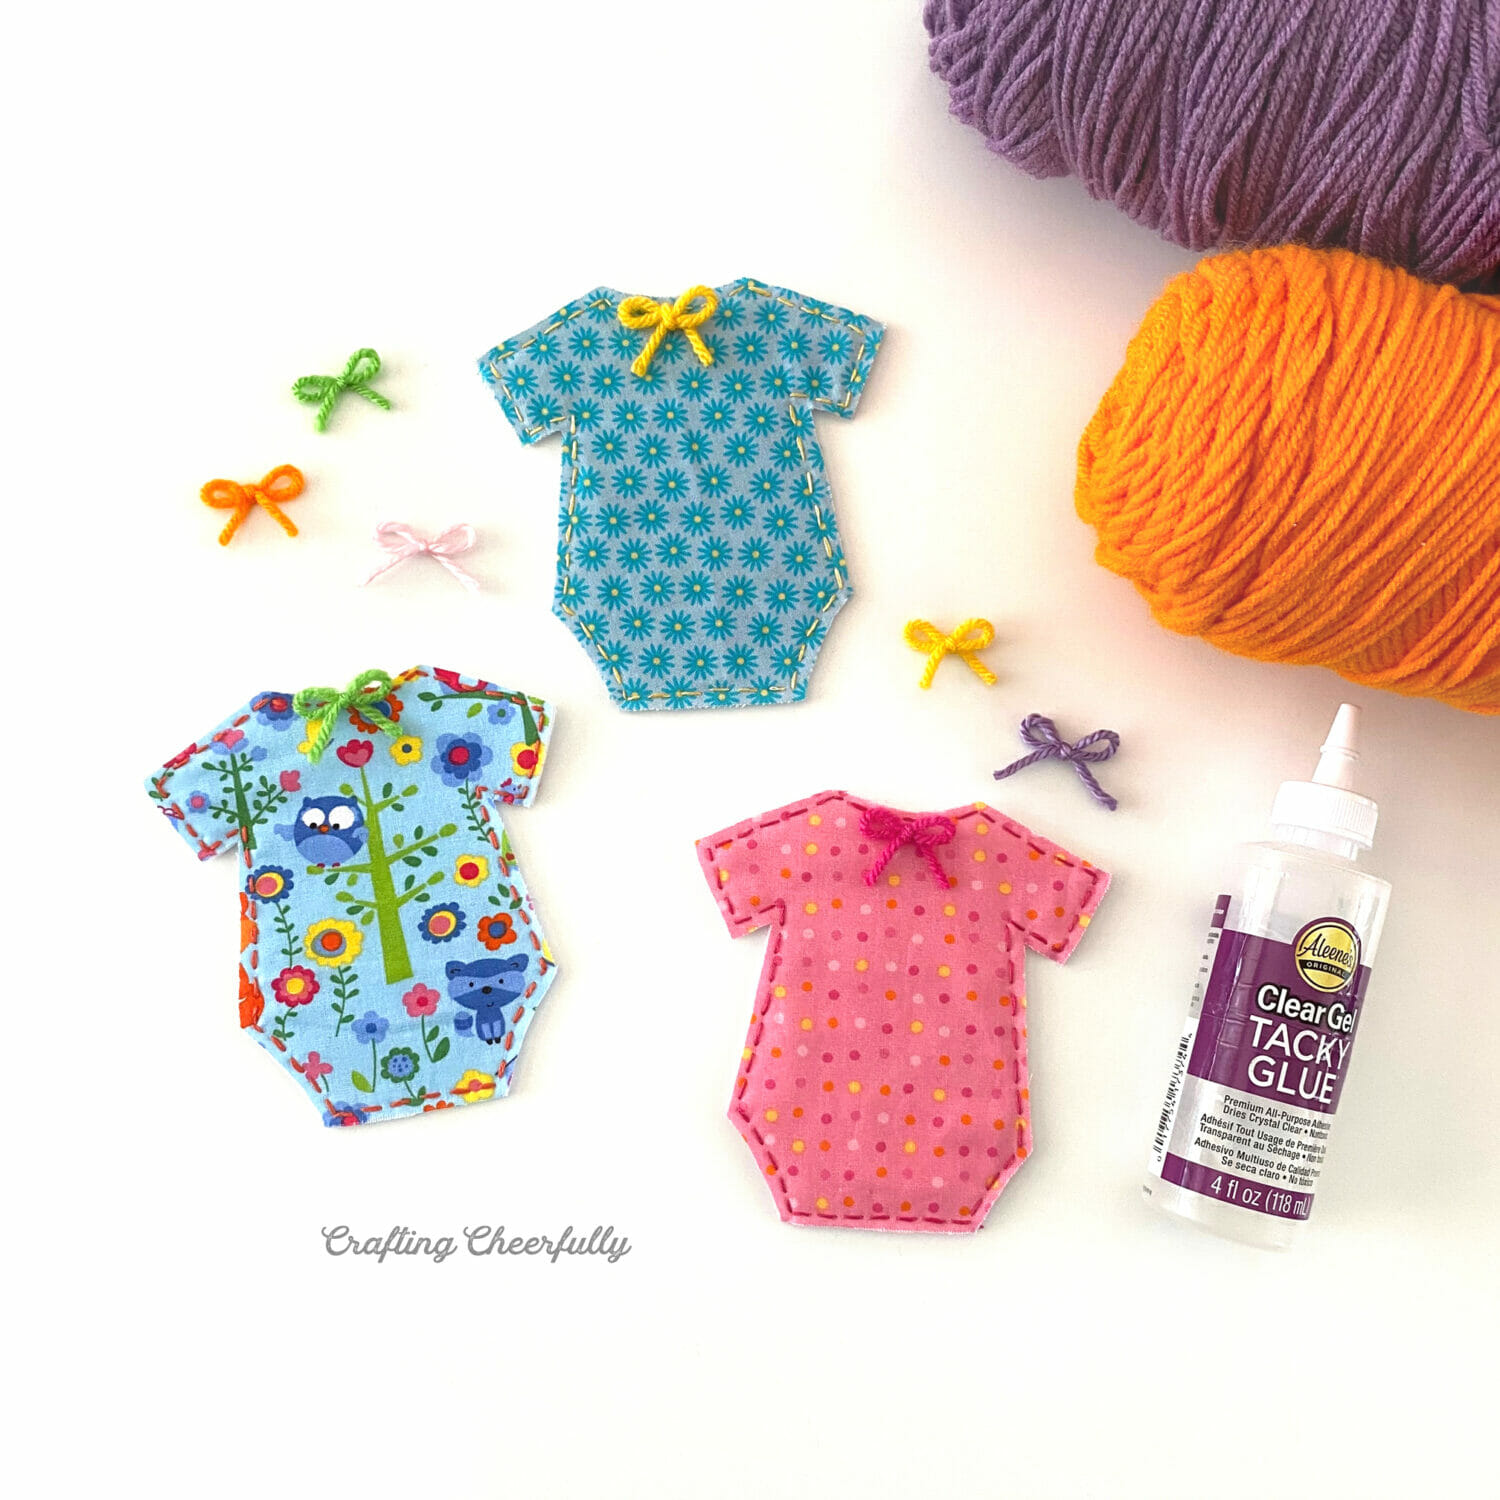 Cute fabric onesies for the banner lay next to yarn, tiny yarn bows and glue.